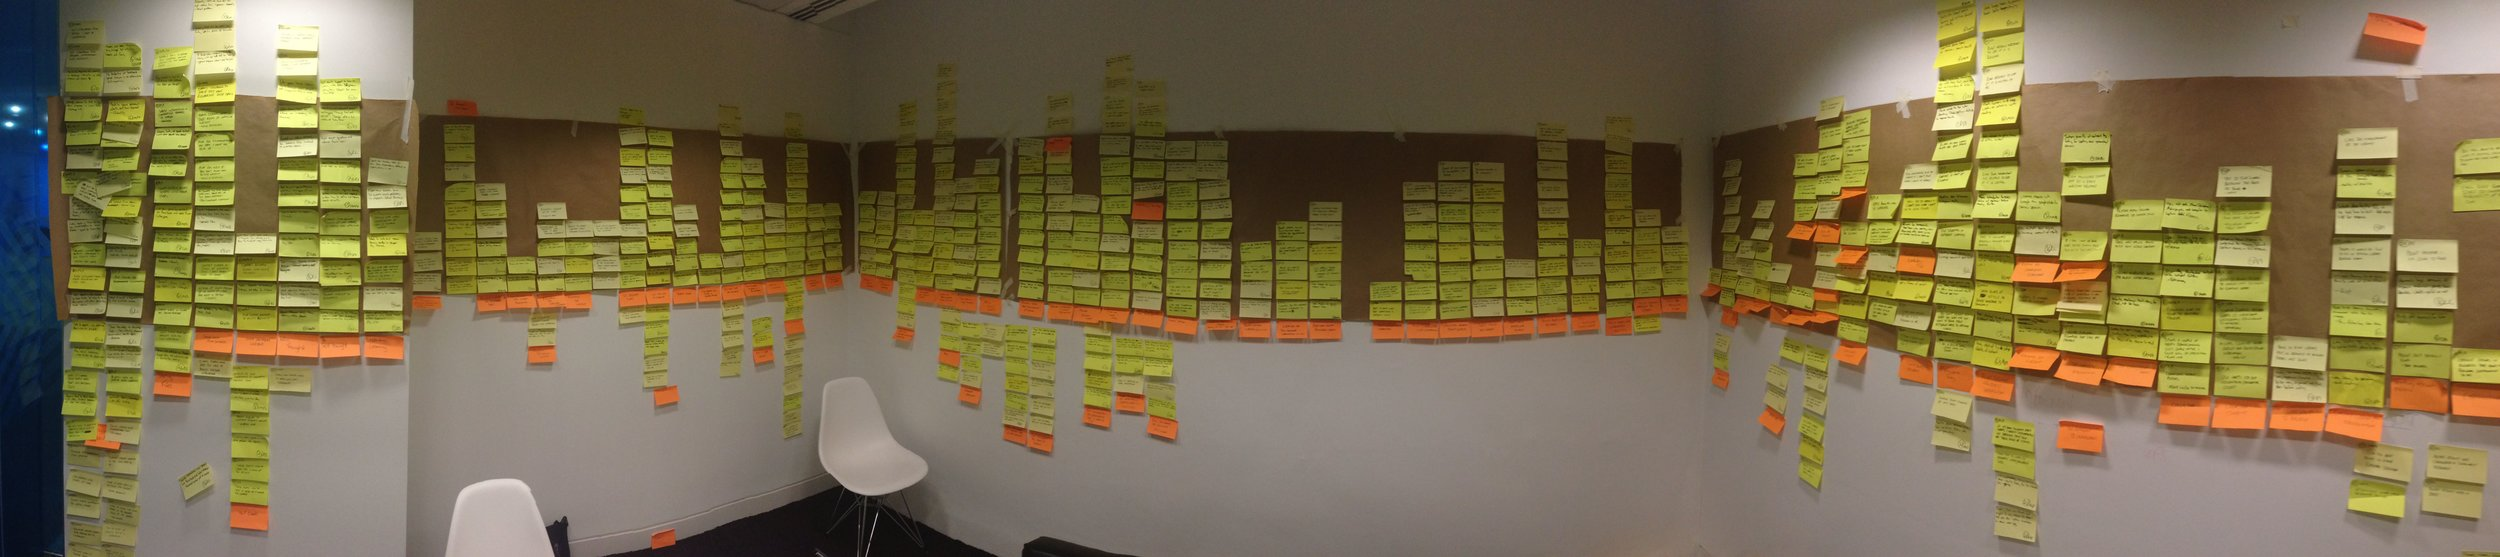 """War Room"" showing outputs of thirty interviews with key points noted and grouped in columns"